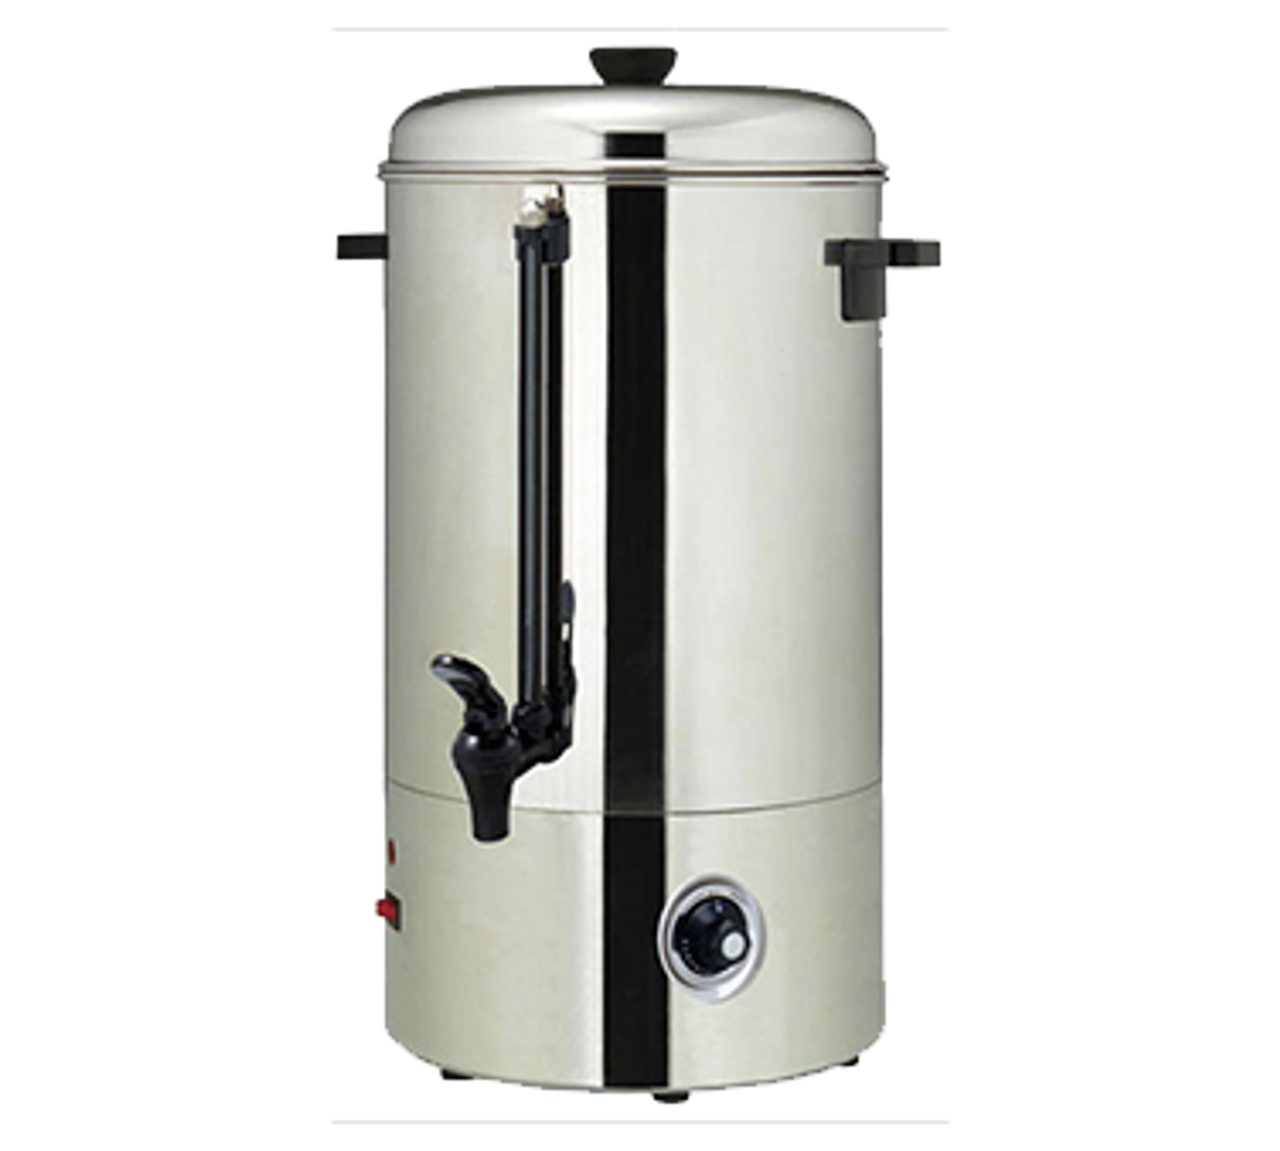 Water Boiler, electric, 100 cup capacity, bottom mounted controls, double handled, stainless steel construction, 120V/60/1-ph, 11.25 amps, 1350 watts, NEMA 5-15P, NSF, ETL-Sanitation, cETLus, CE